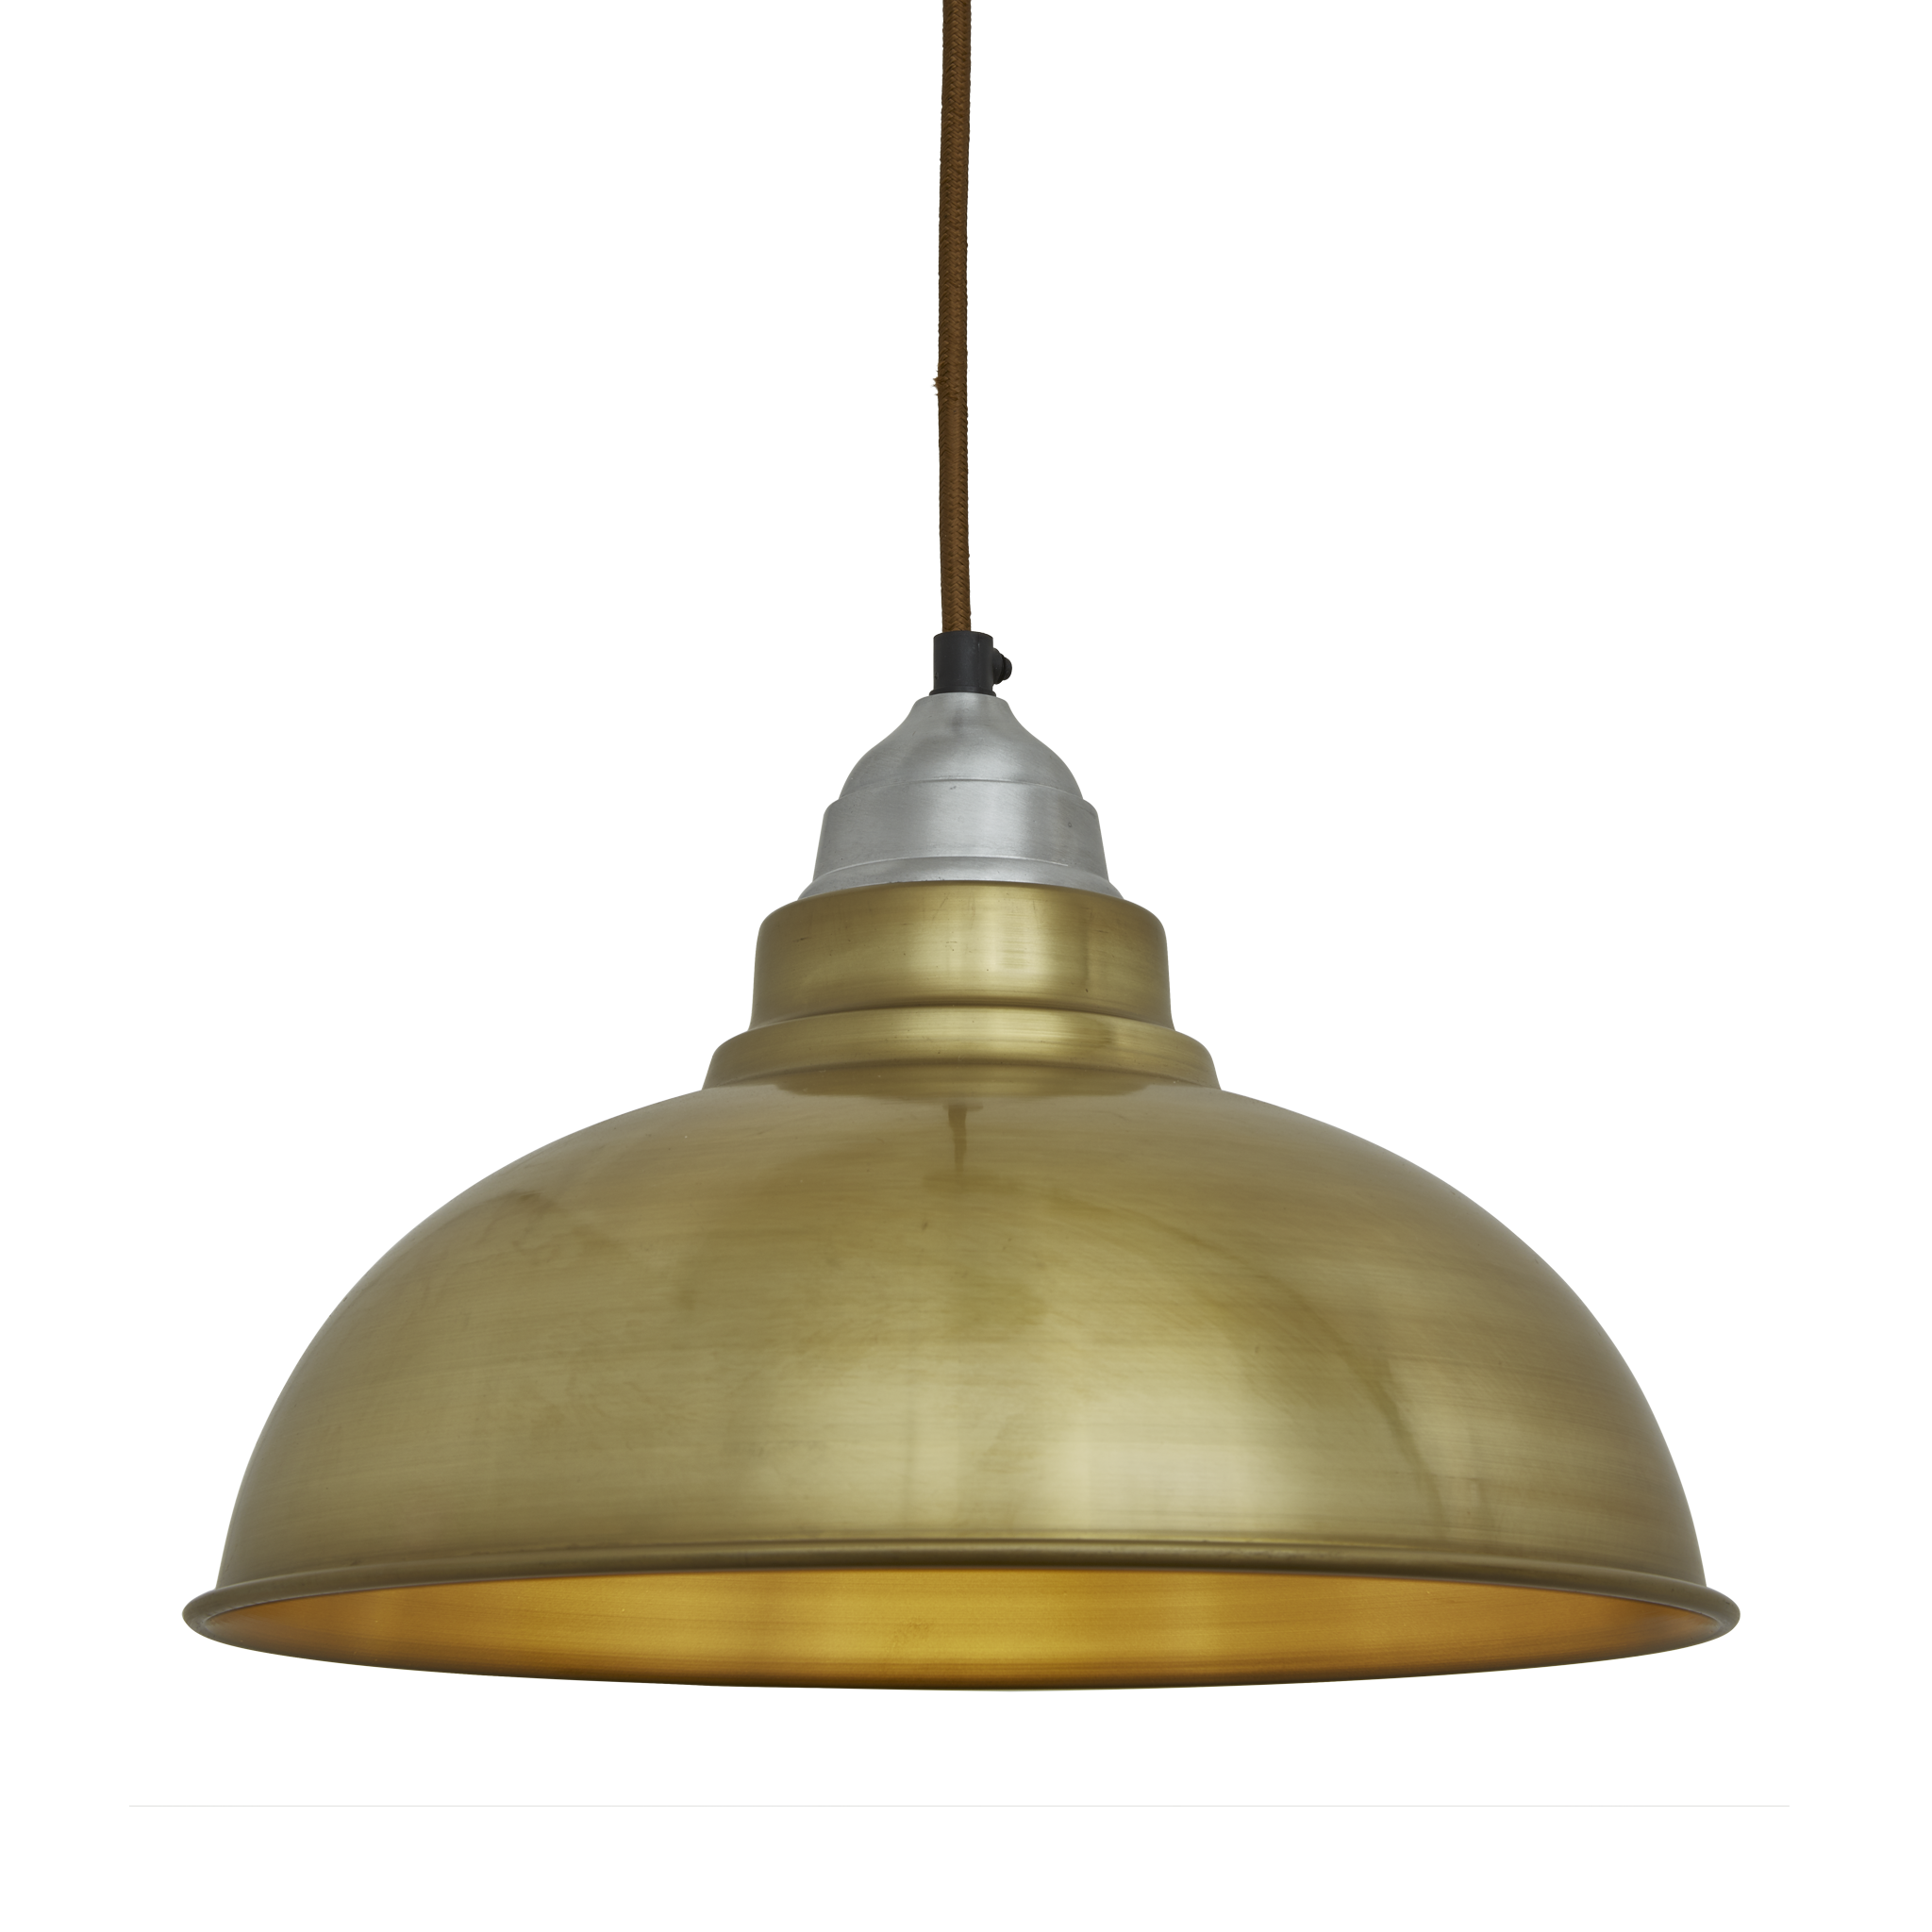 Old Factory Vintage Pendant Light - Brass - 12 inch | Lampshades ... for Vintage Hanging Lamp Png  15lptgx